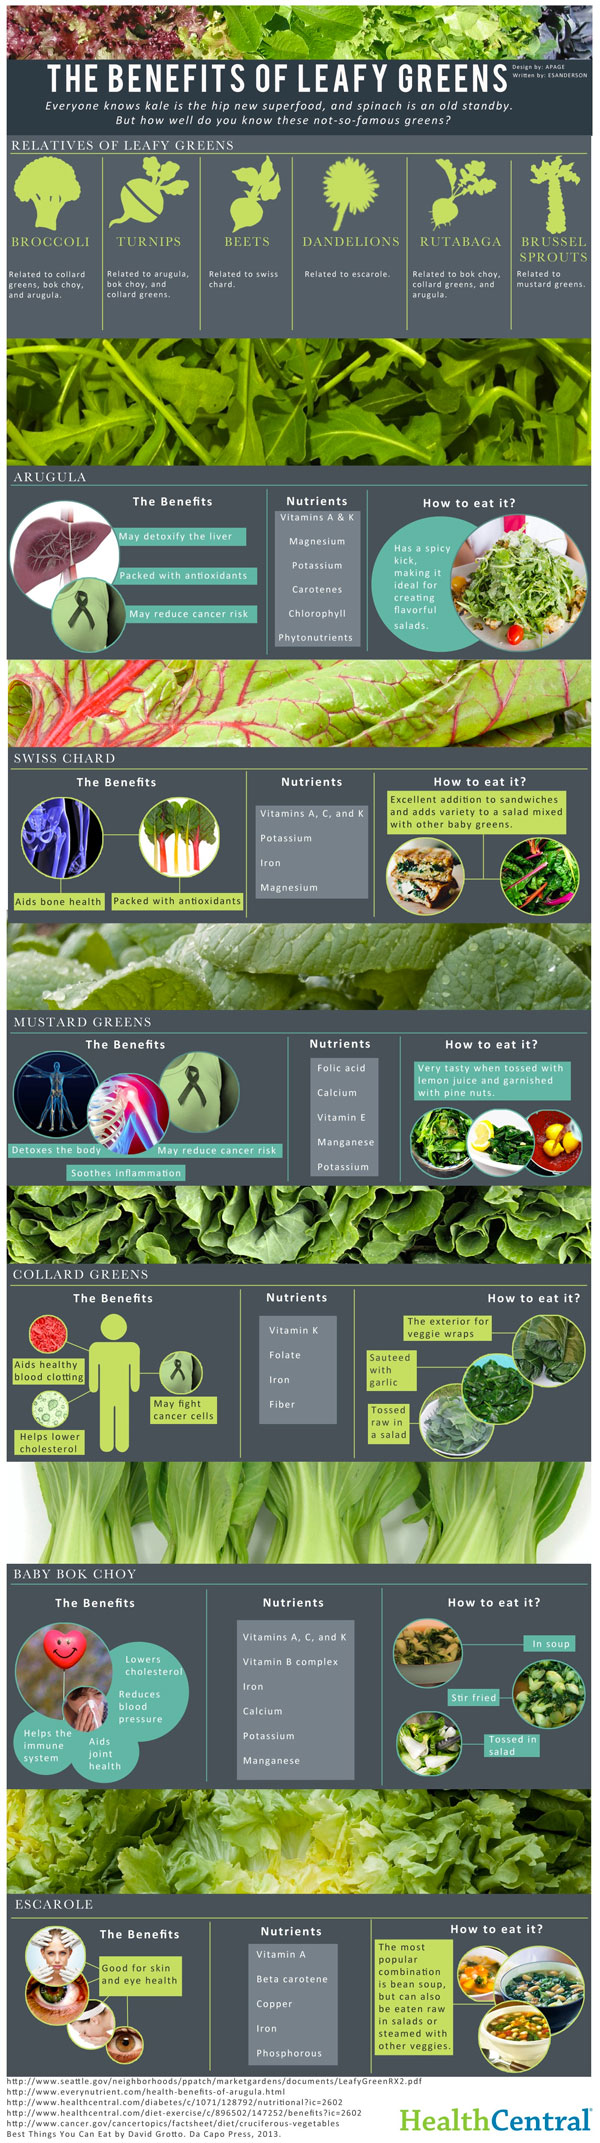 The Benefits of Leafy Greens